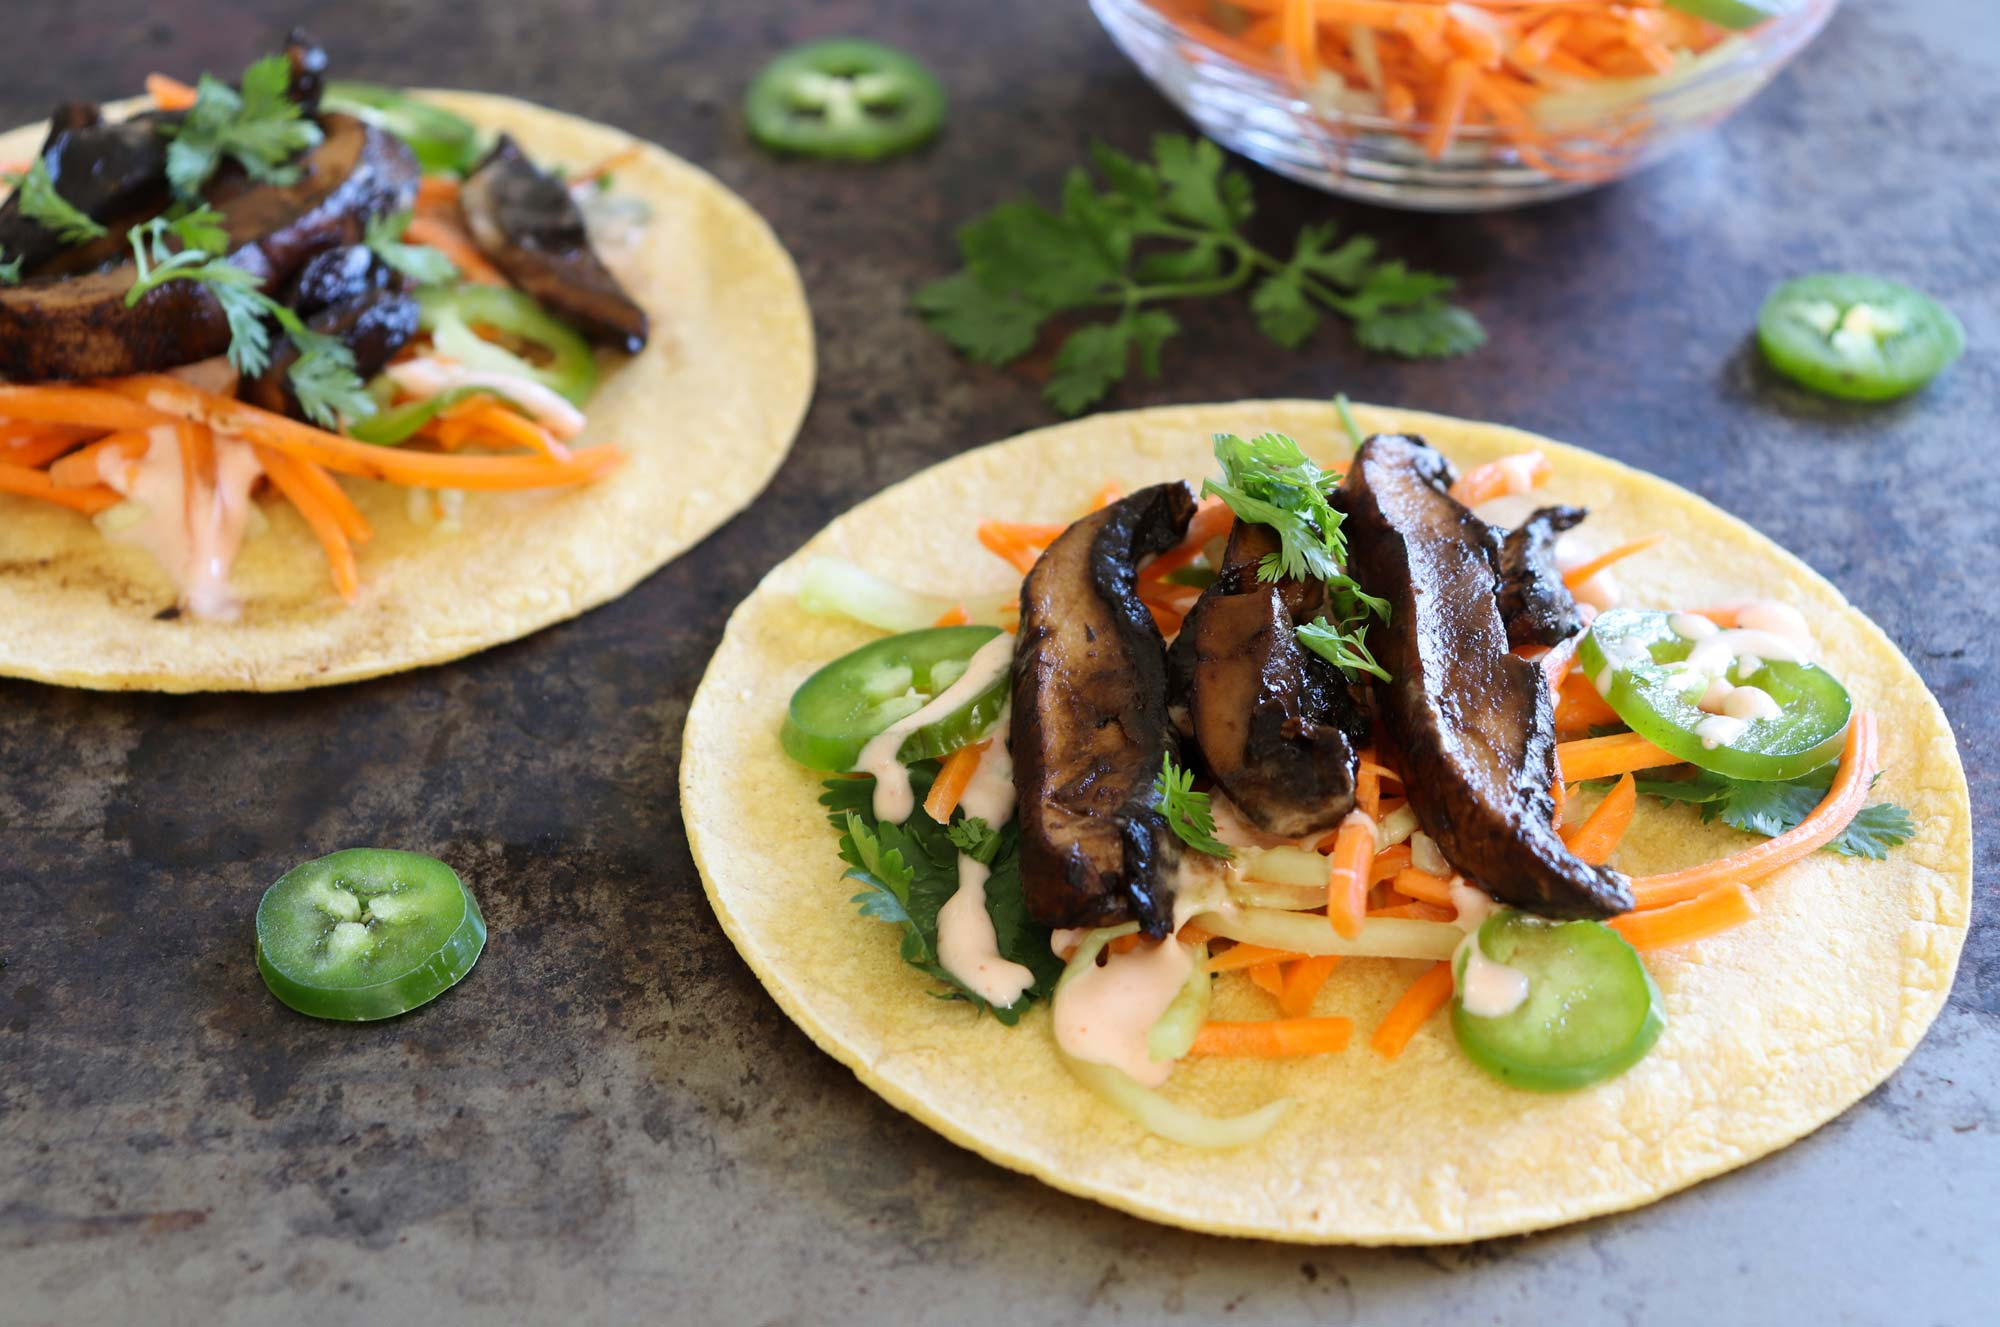 Plant-based dinner recipes: Bahn mi tacos